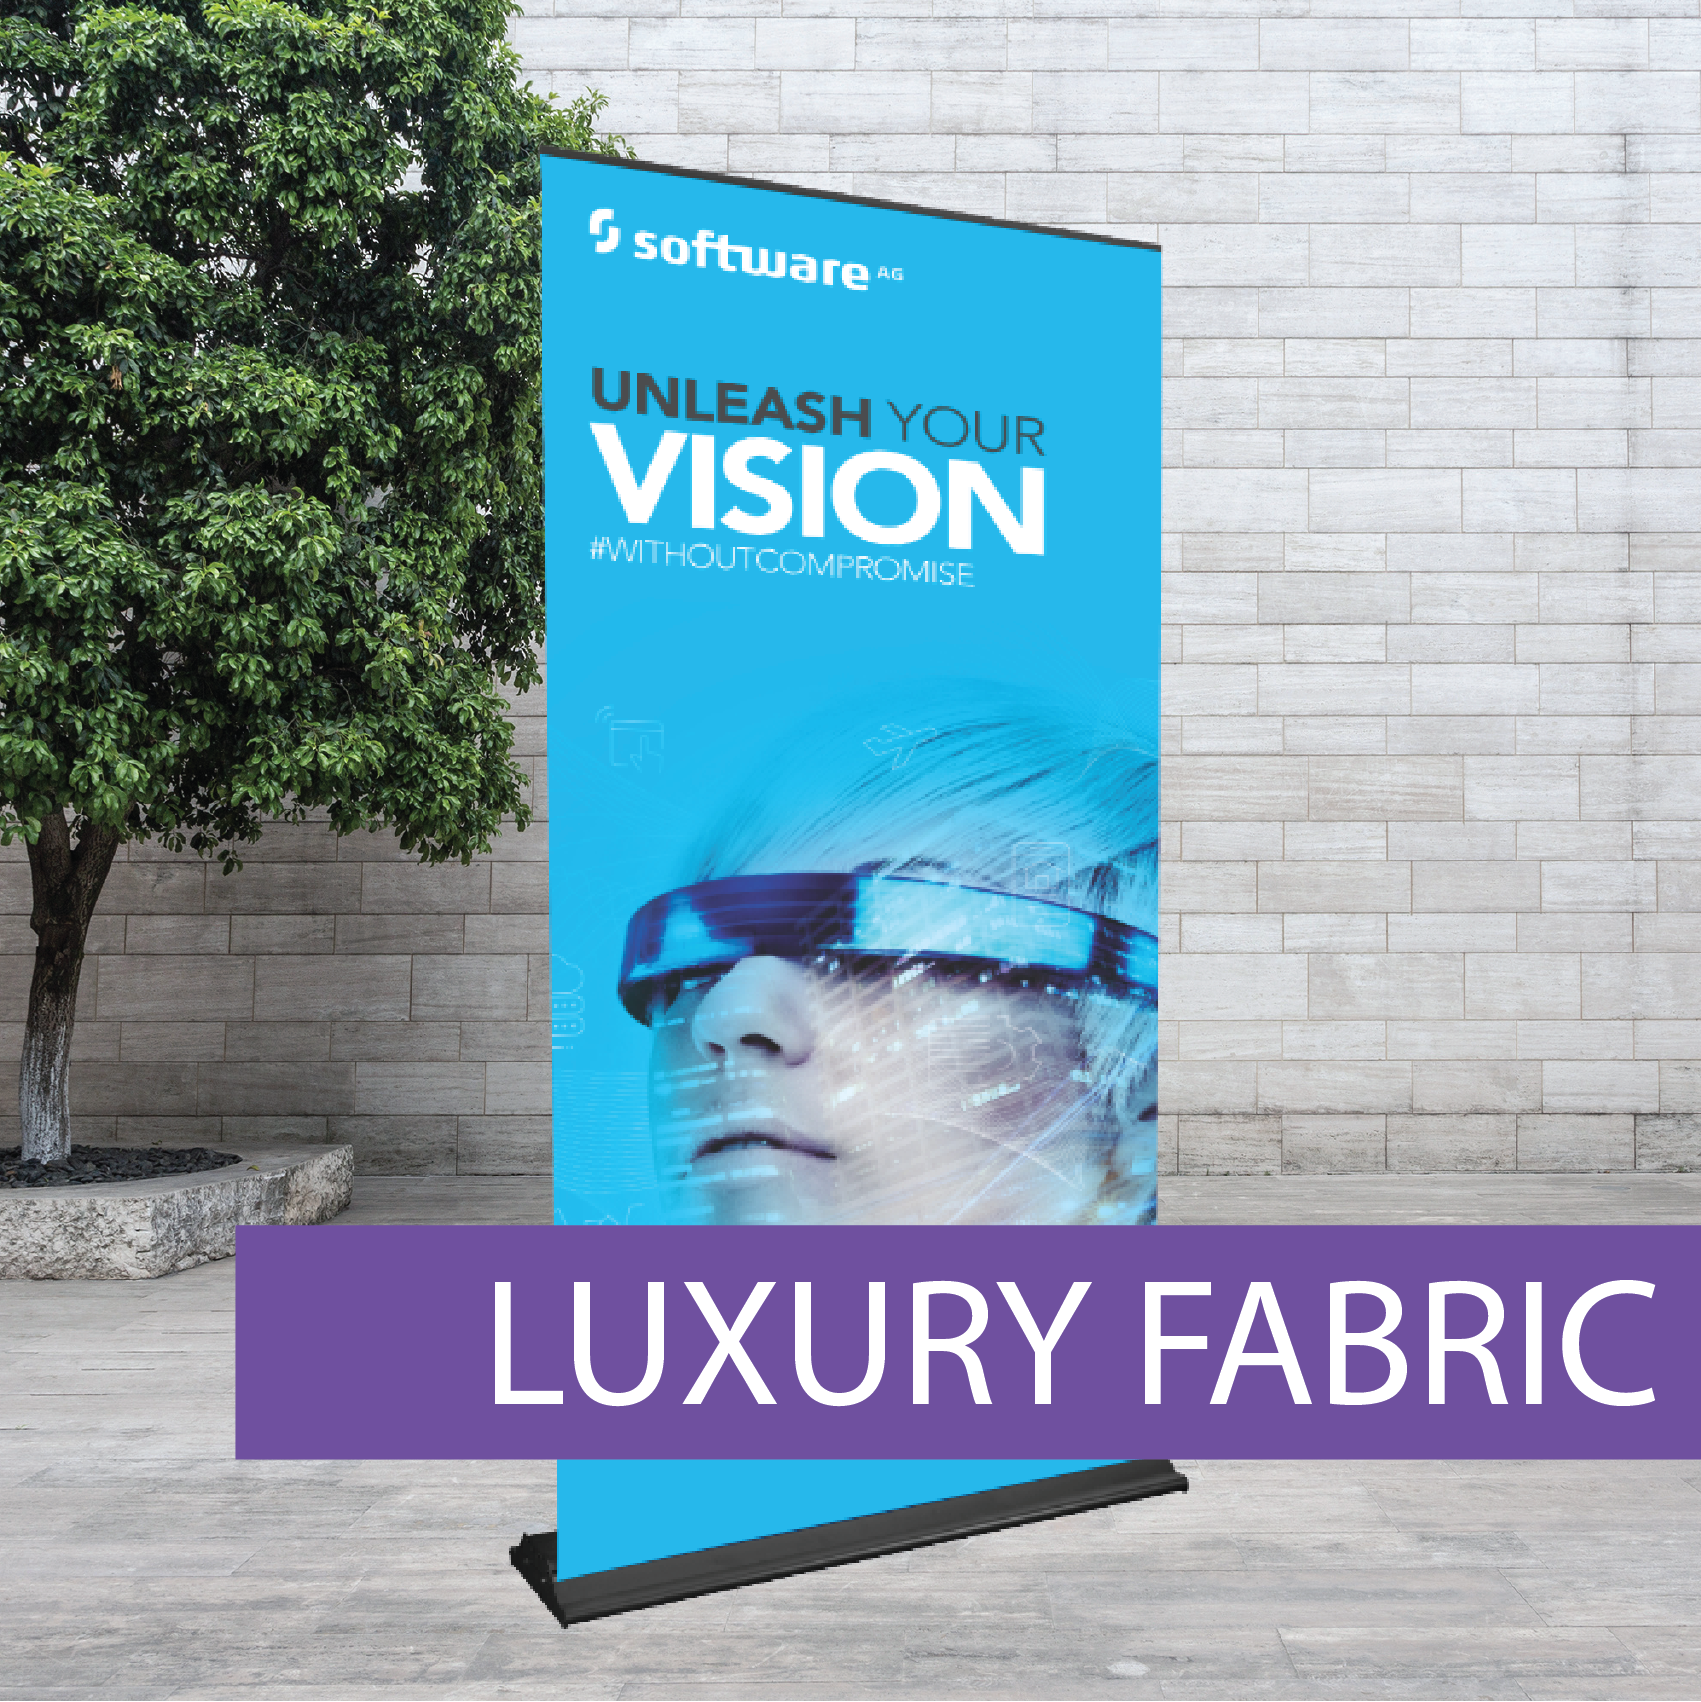 Luxury fabric retractabl banner